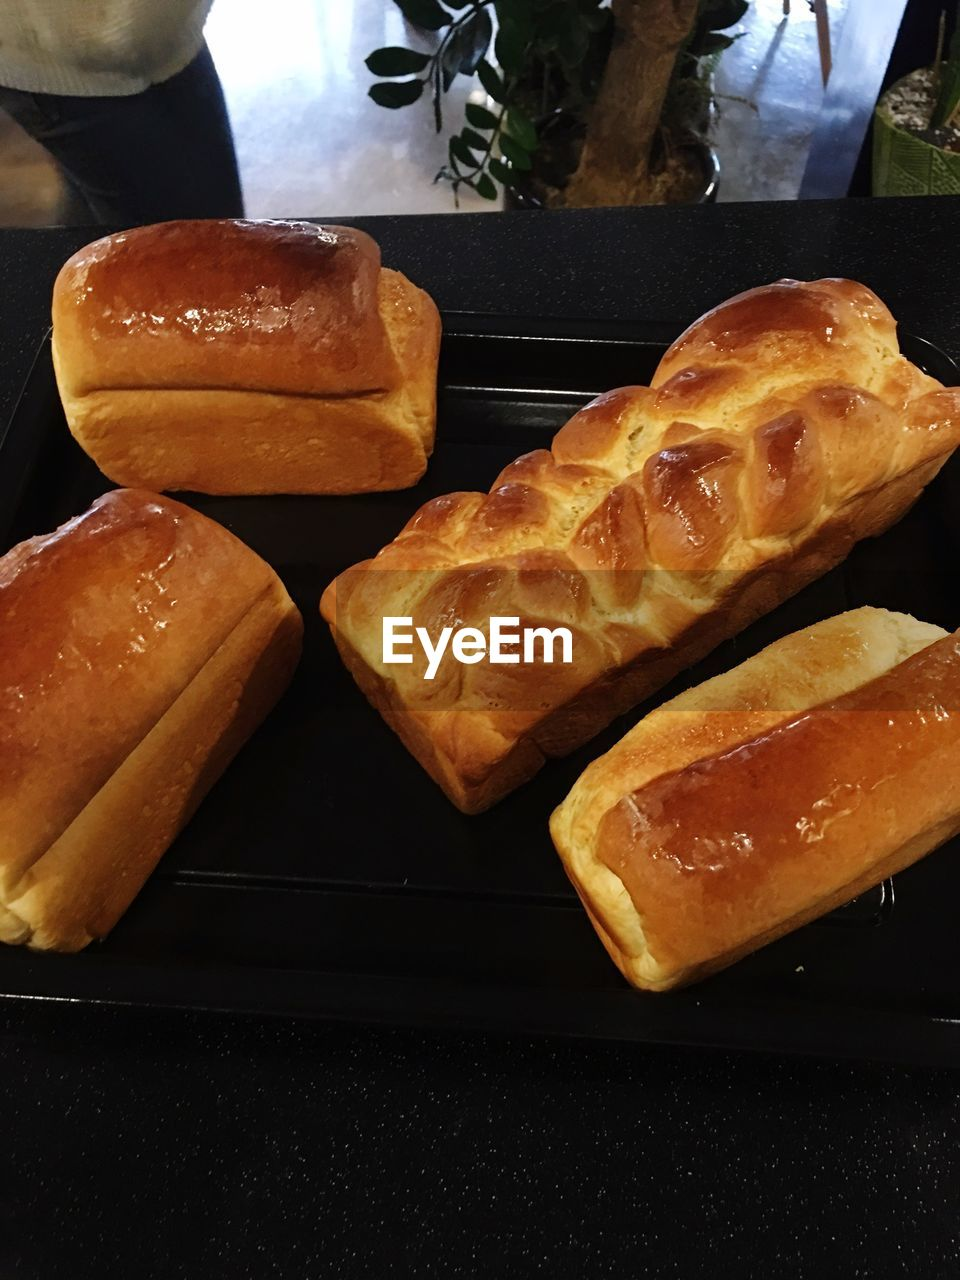 food and drink, food, freshness, bread, indoors, breakfast, no people, bun, close-up, healthy eating, ready-to-eat, bakery, gourmet, snack, loaf of bread, day